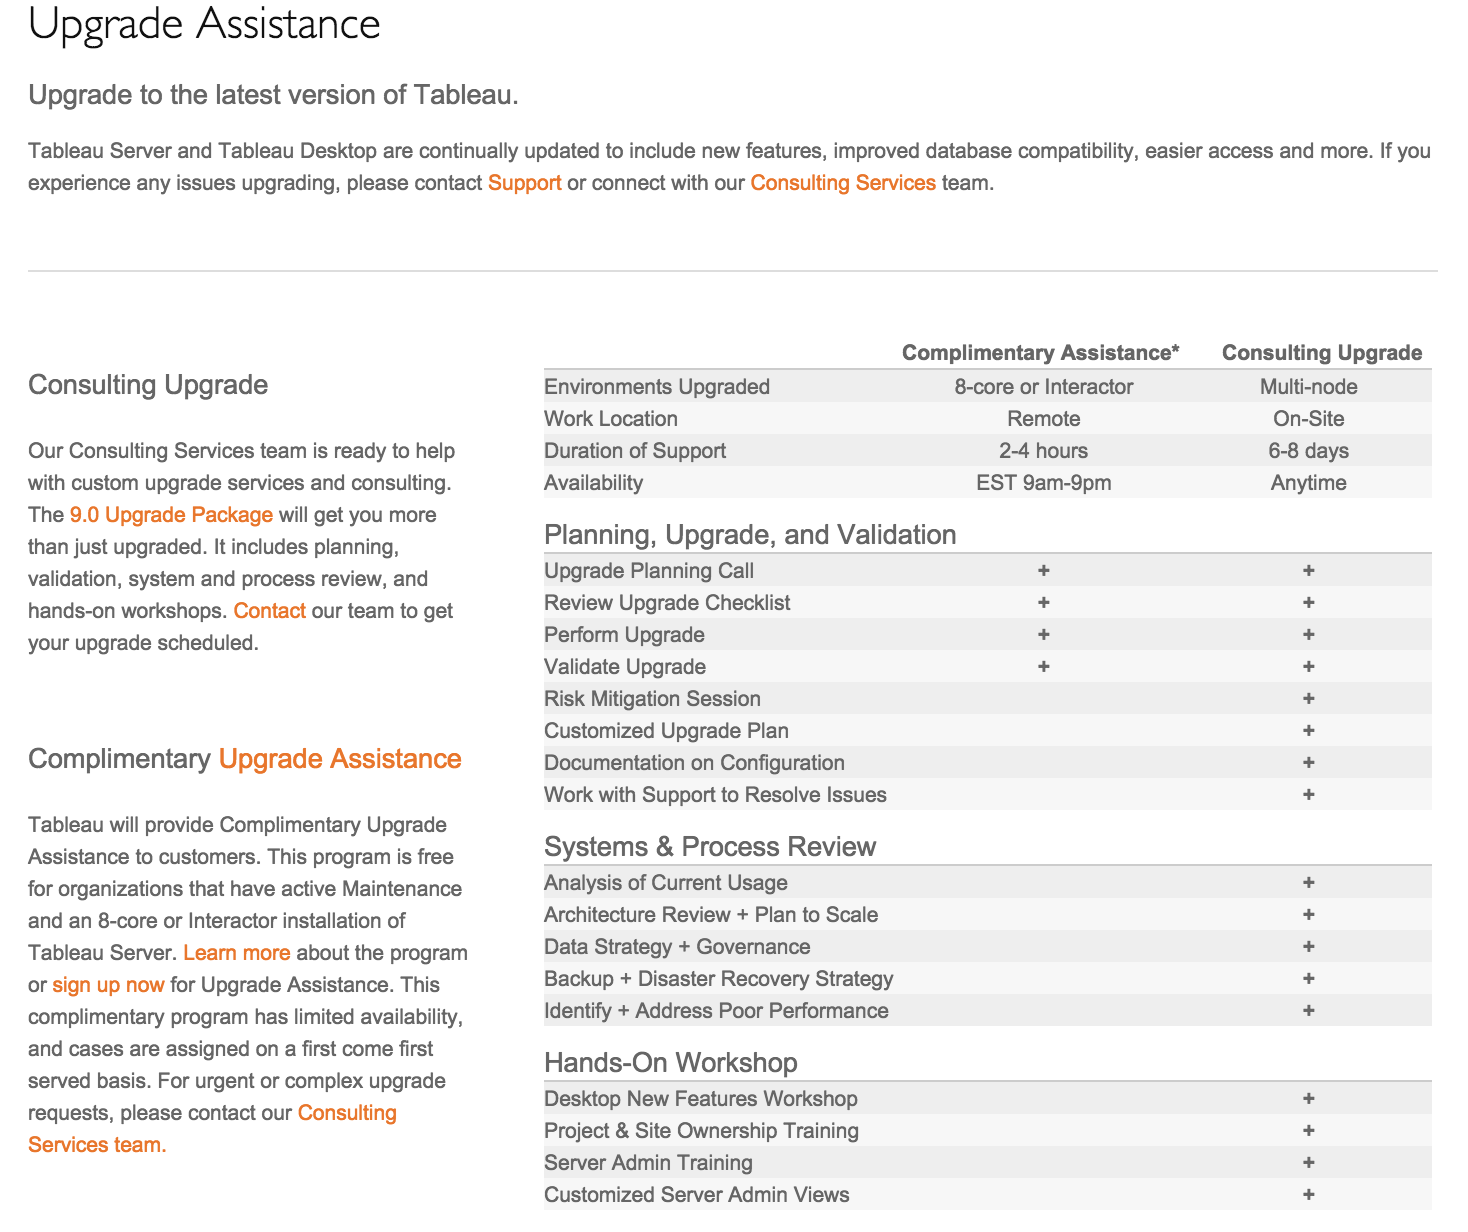 how to manage tableau upgrades in an enterprise environment paul